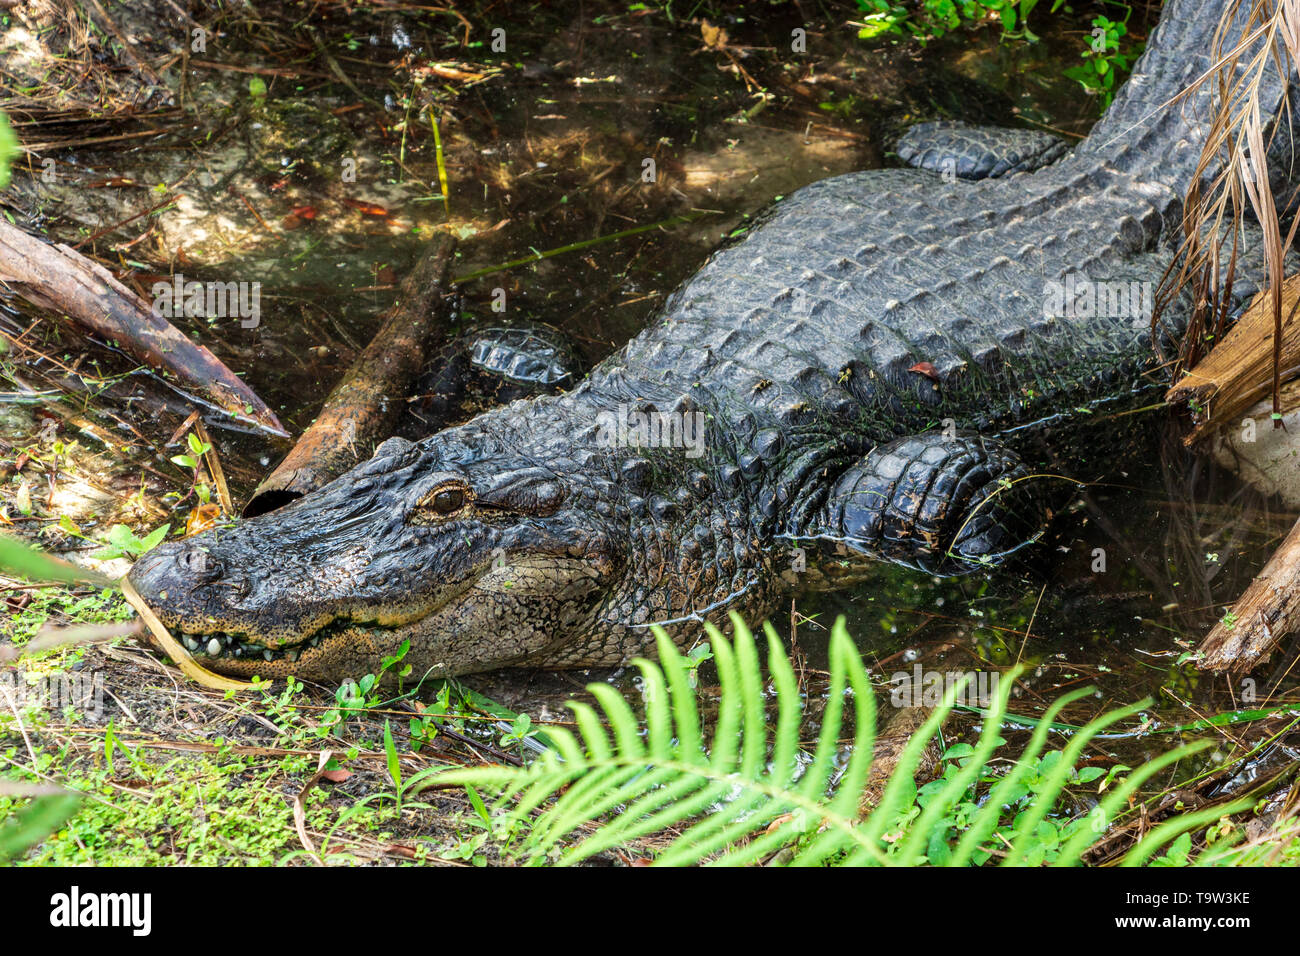 American alligator (Alligator mississippiensis) lying in pond, captive animal - Florida, USA - Stock Image